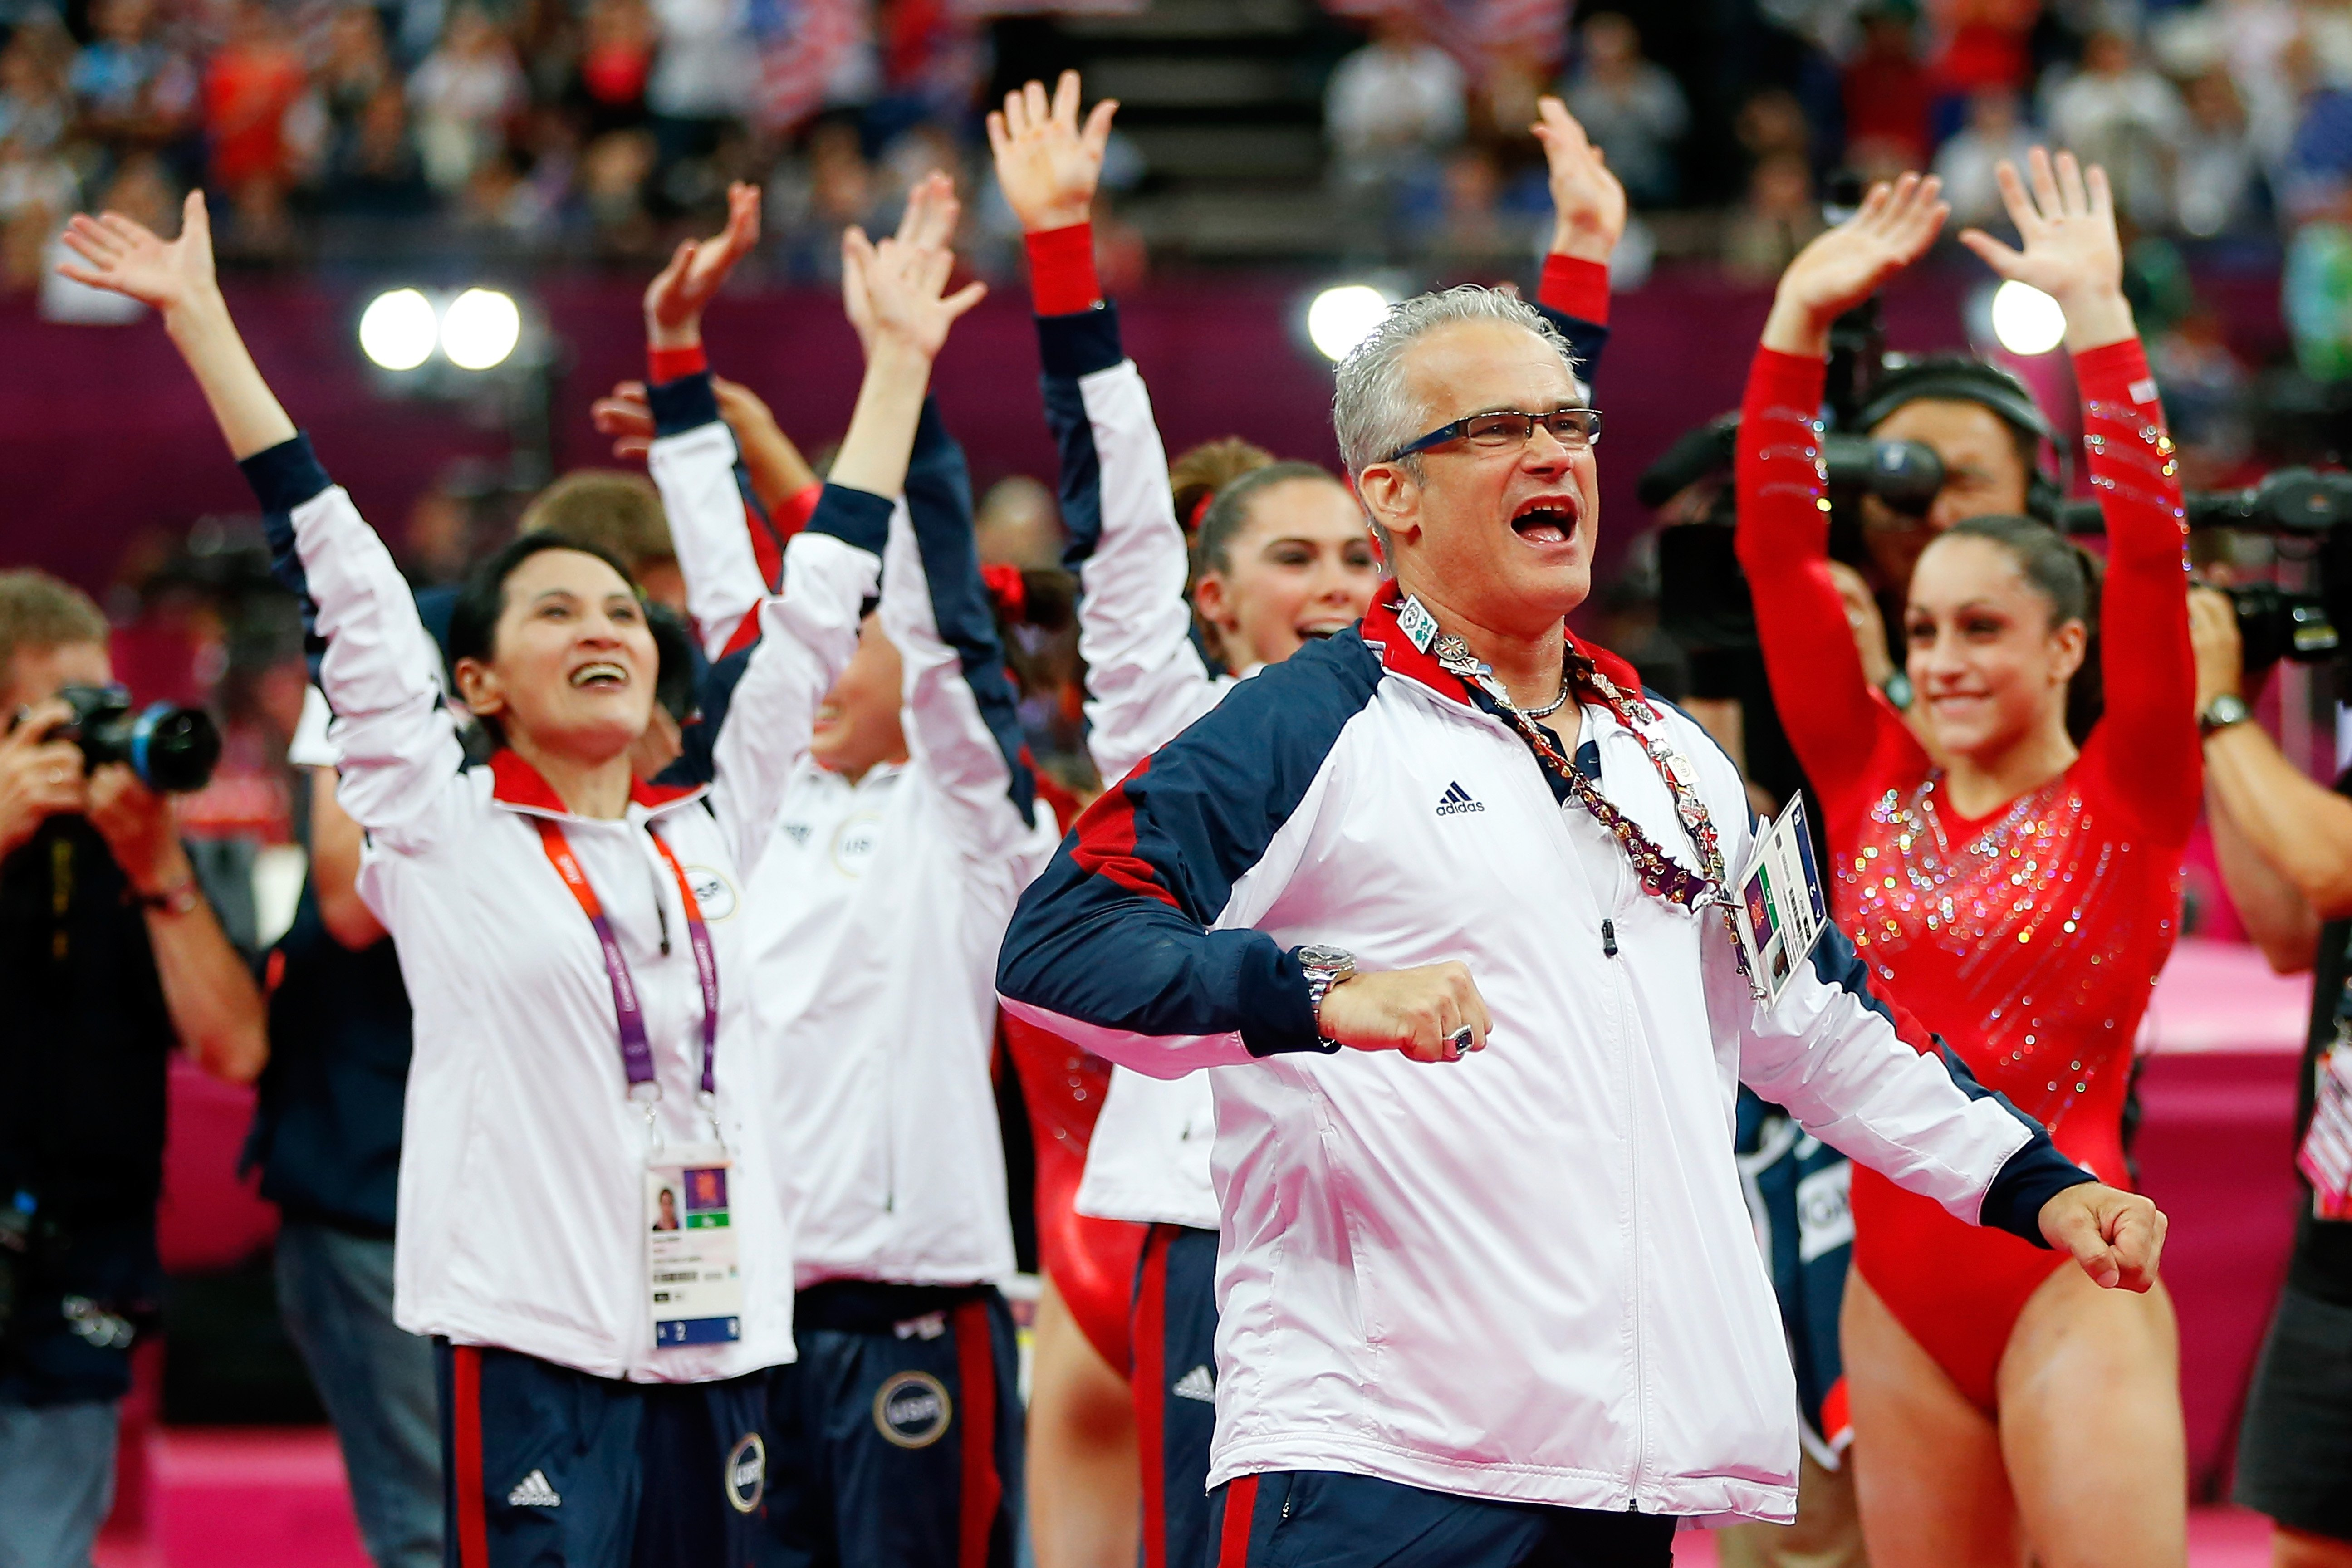 United States women's gymnastics coach John Geddert celebrating during the final rotation in the Artistic Gymnastics Women's Team final at the London 2012 Olympic Games at North Greenwich Arena in London, England | Photo: Jamie Squire/Getty Images